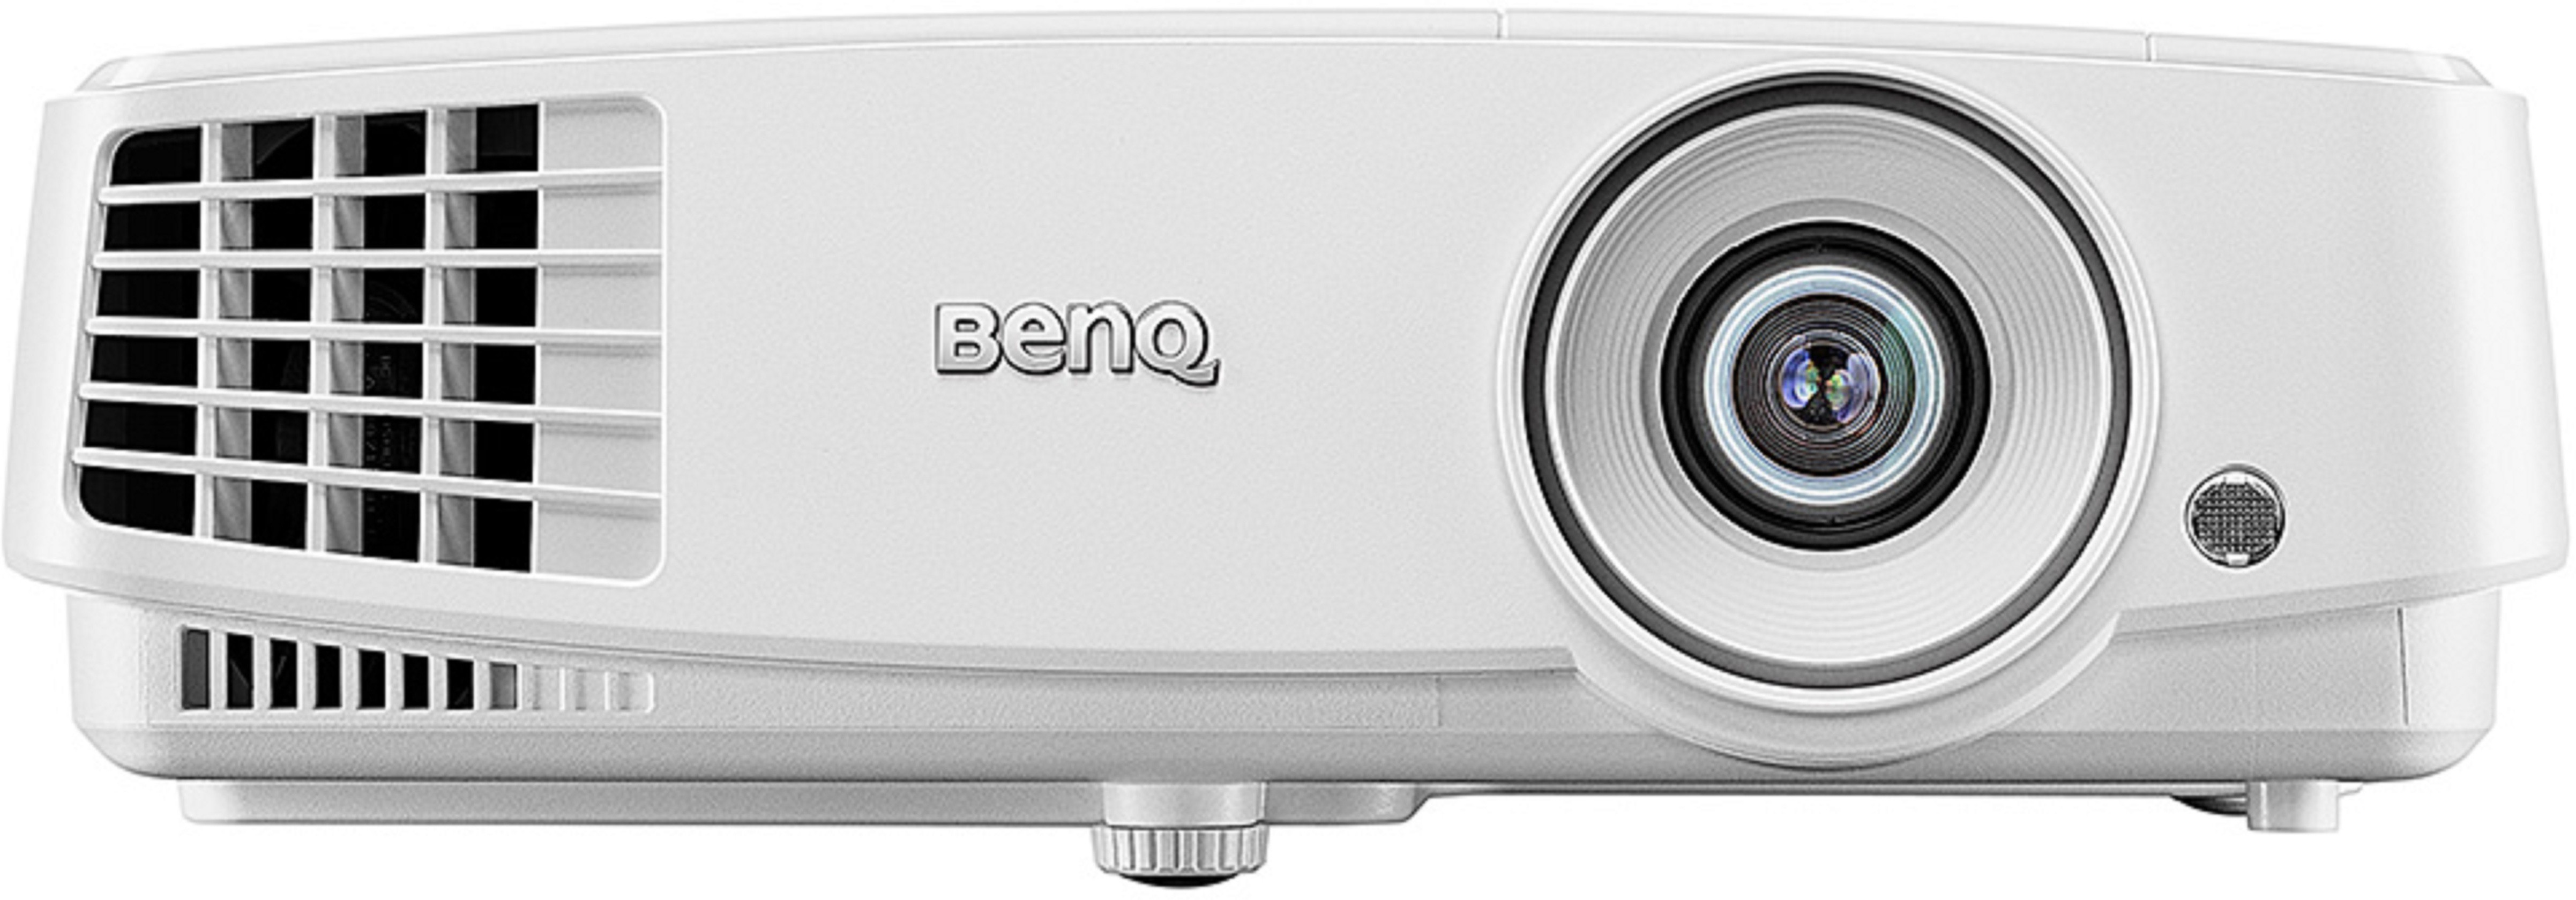 BenQ 3200 lm DLP Corded Portable Projector(Black)